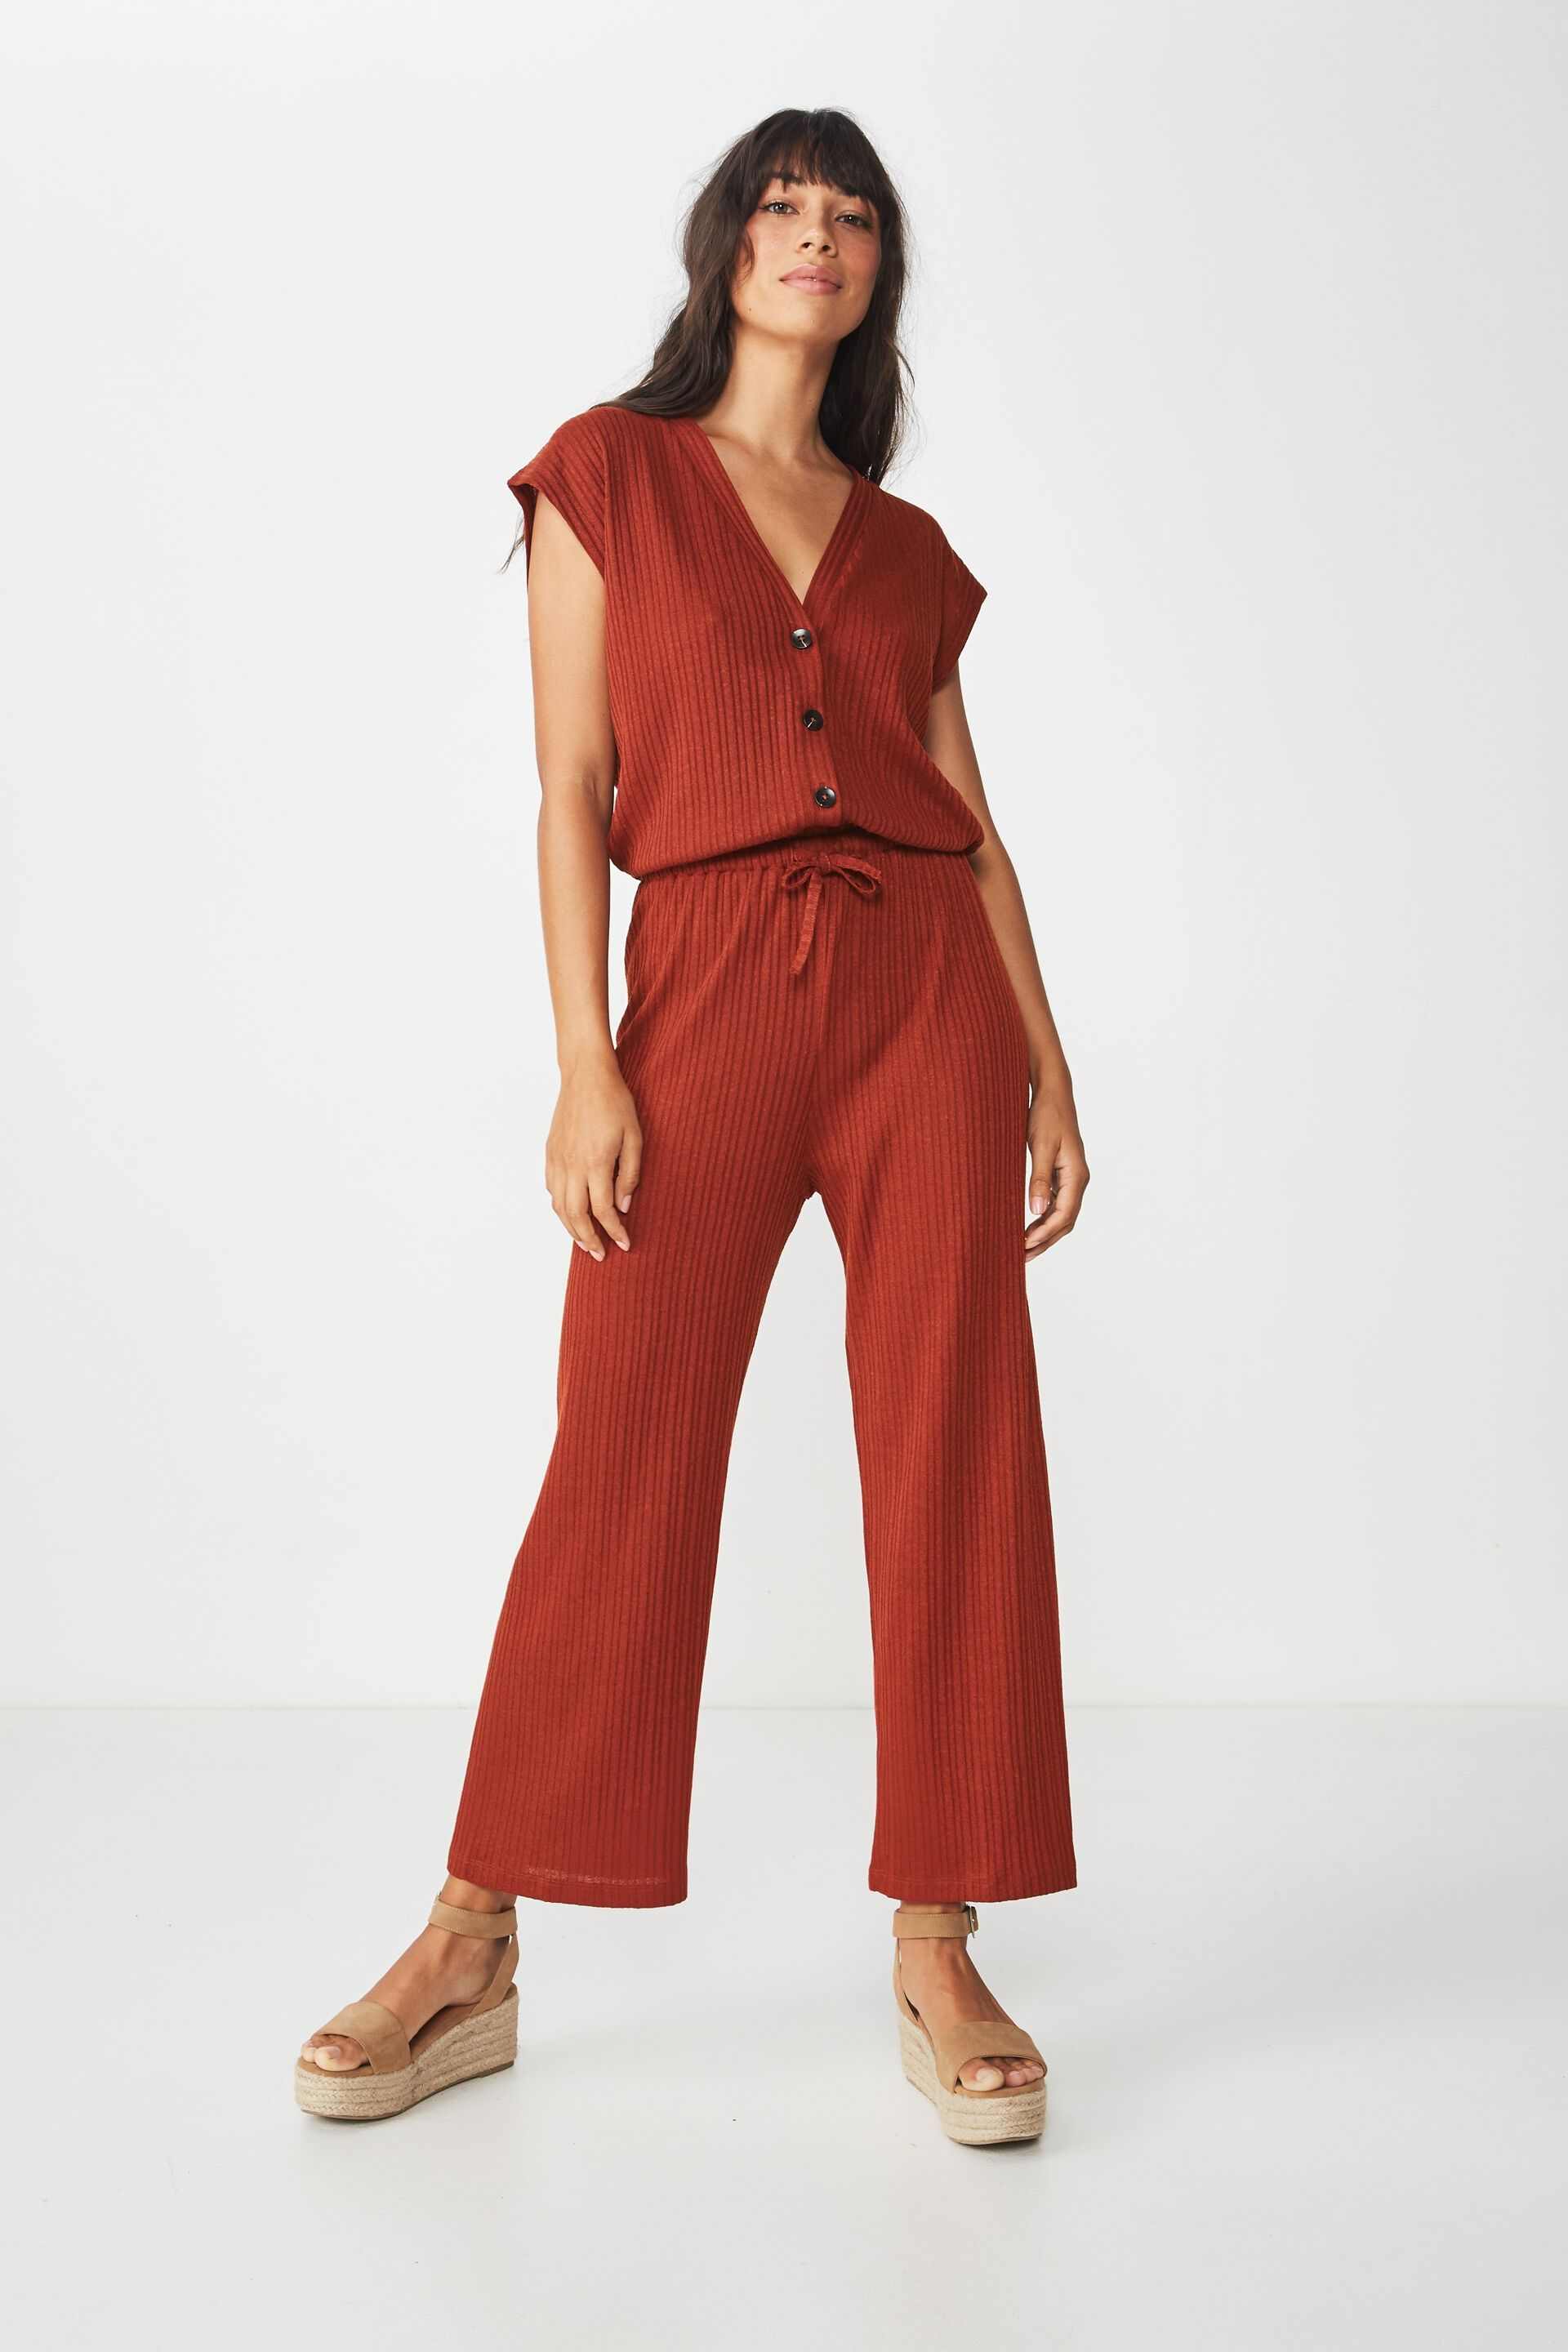 Playsuit Wide Selection; Jumpsuits, Rompers & Playsuits